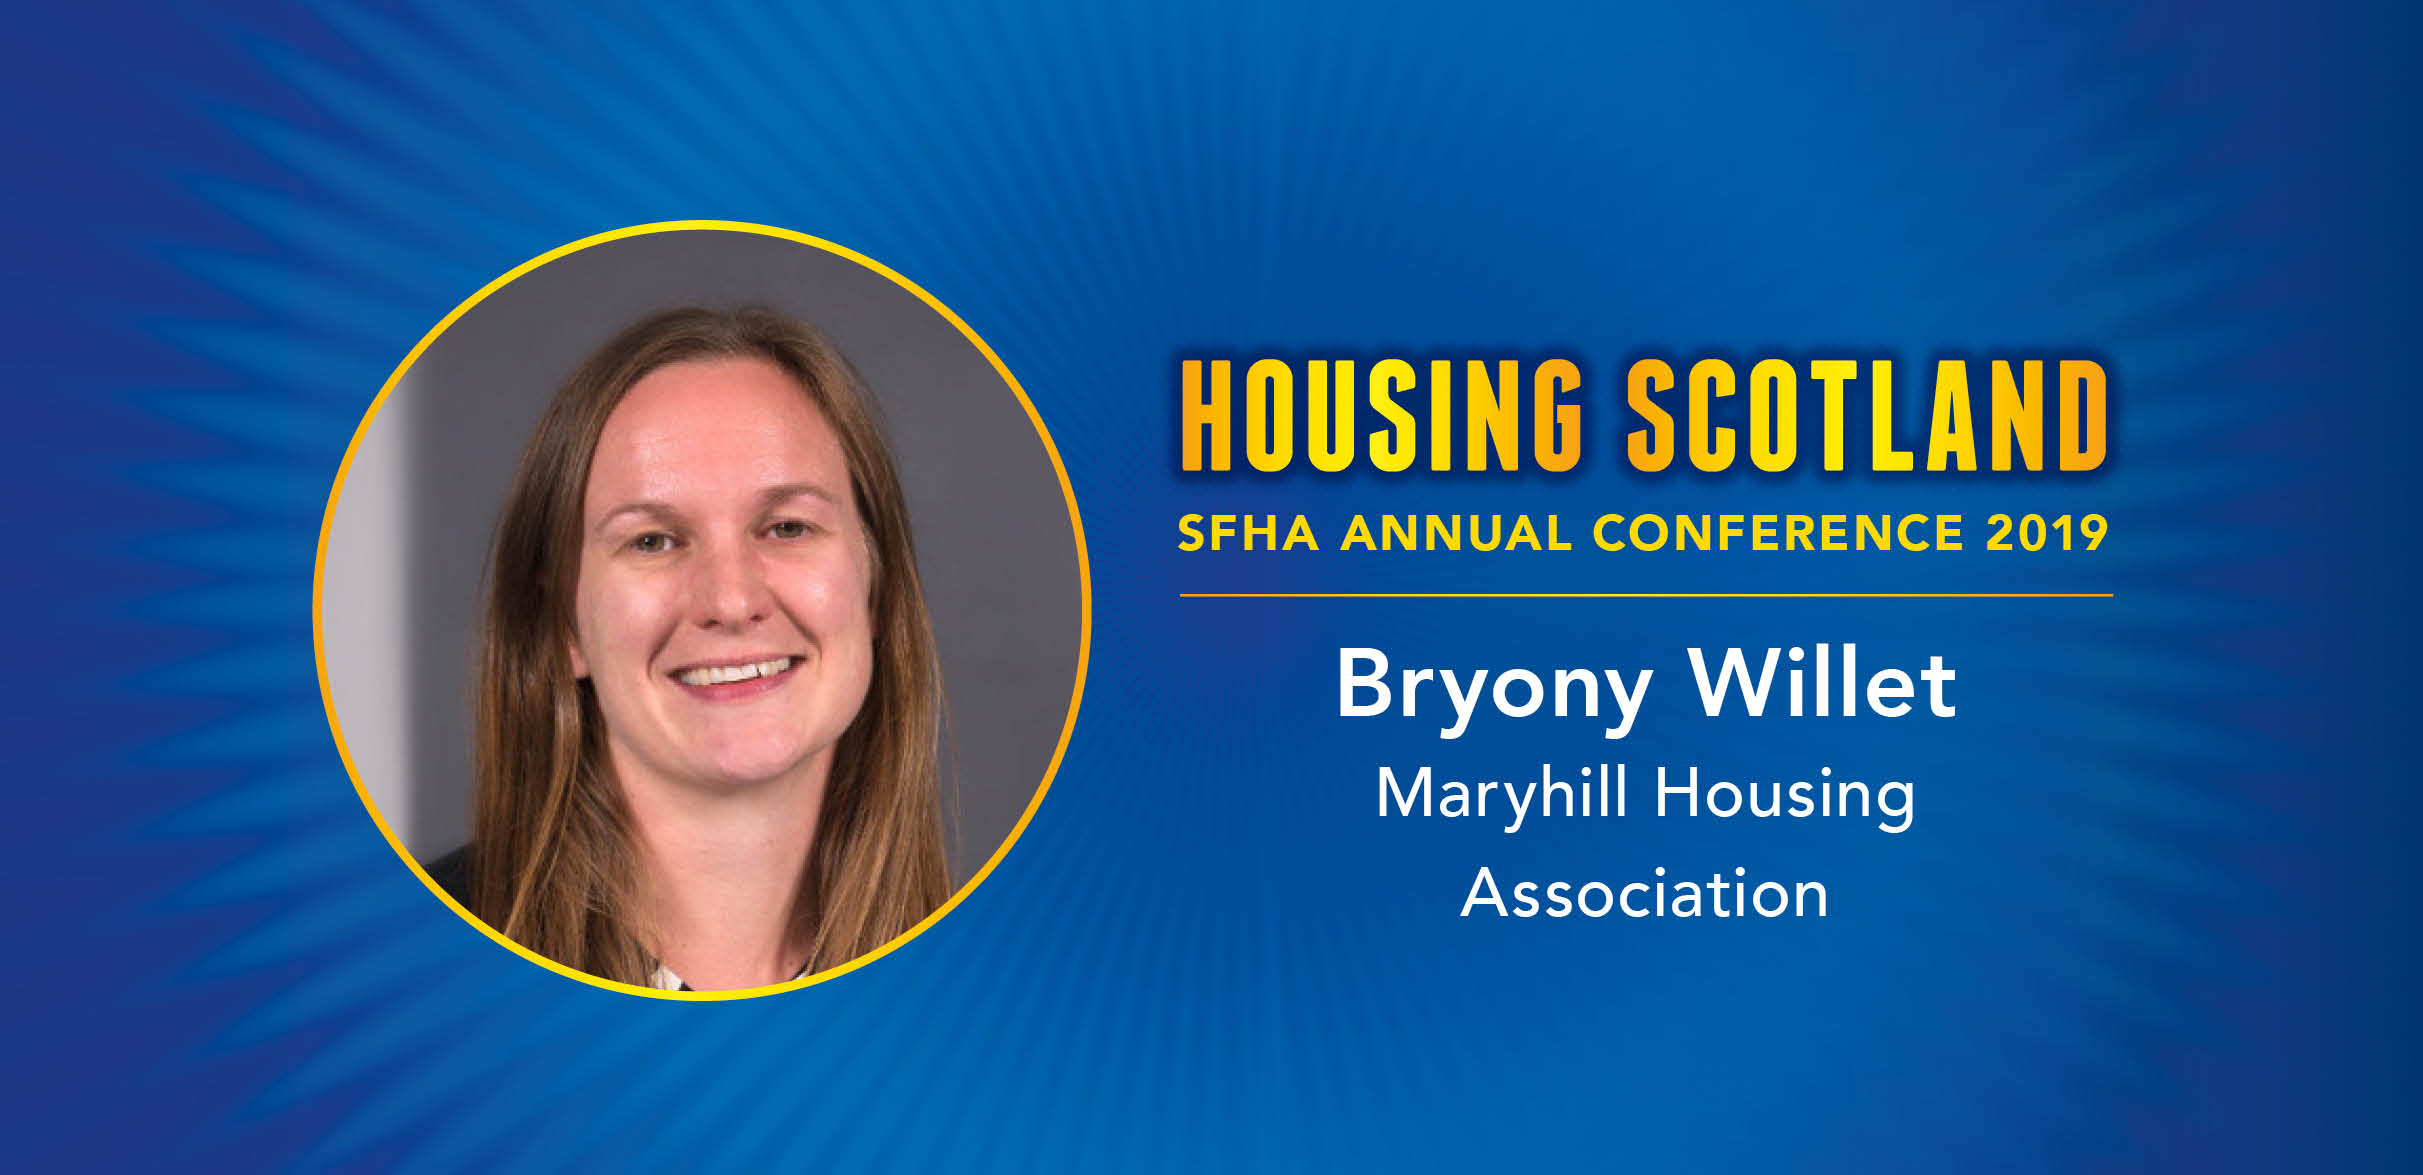 Meet the Housing Scotland 2019 speaker: Bryony Willet, Maryhill Housing Association image